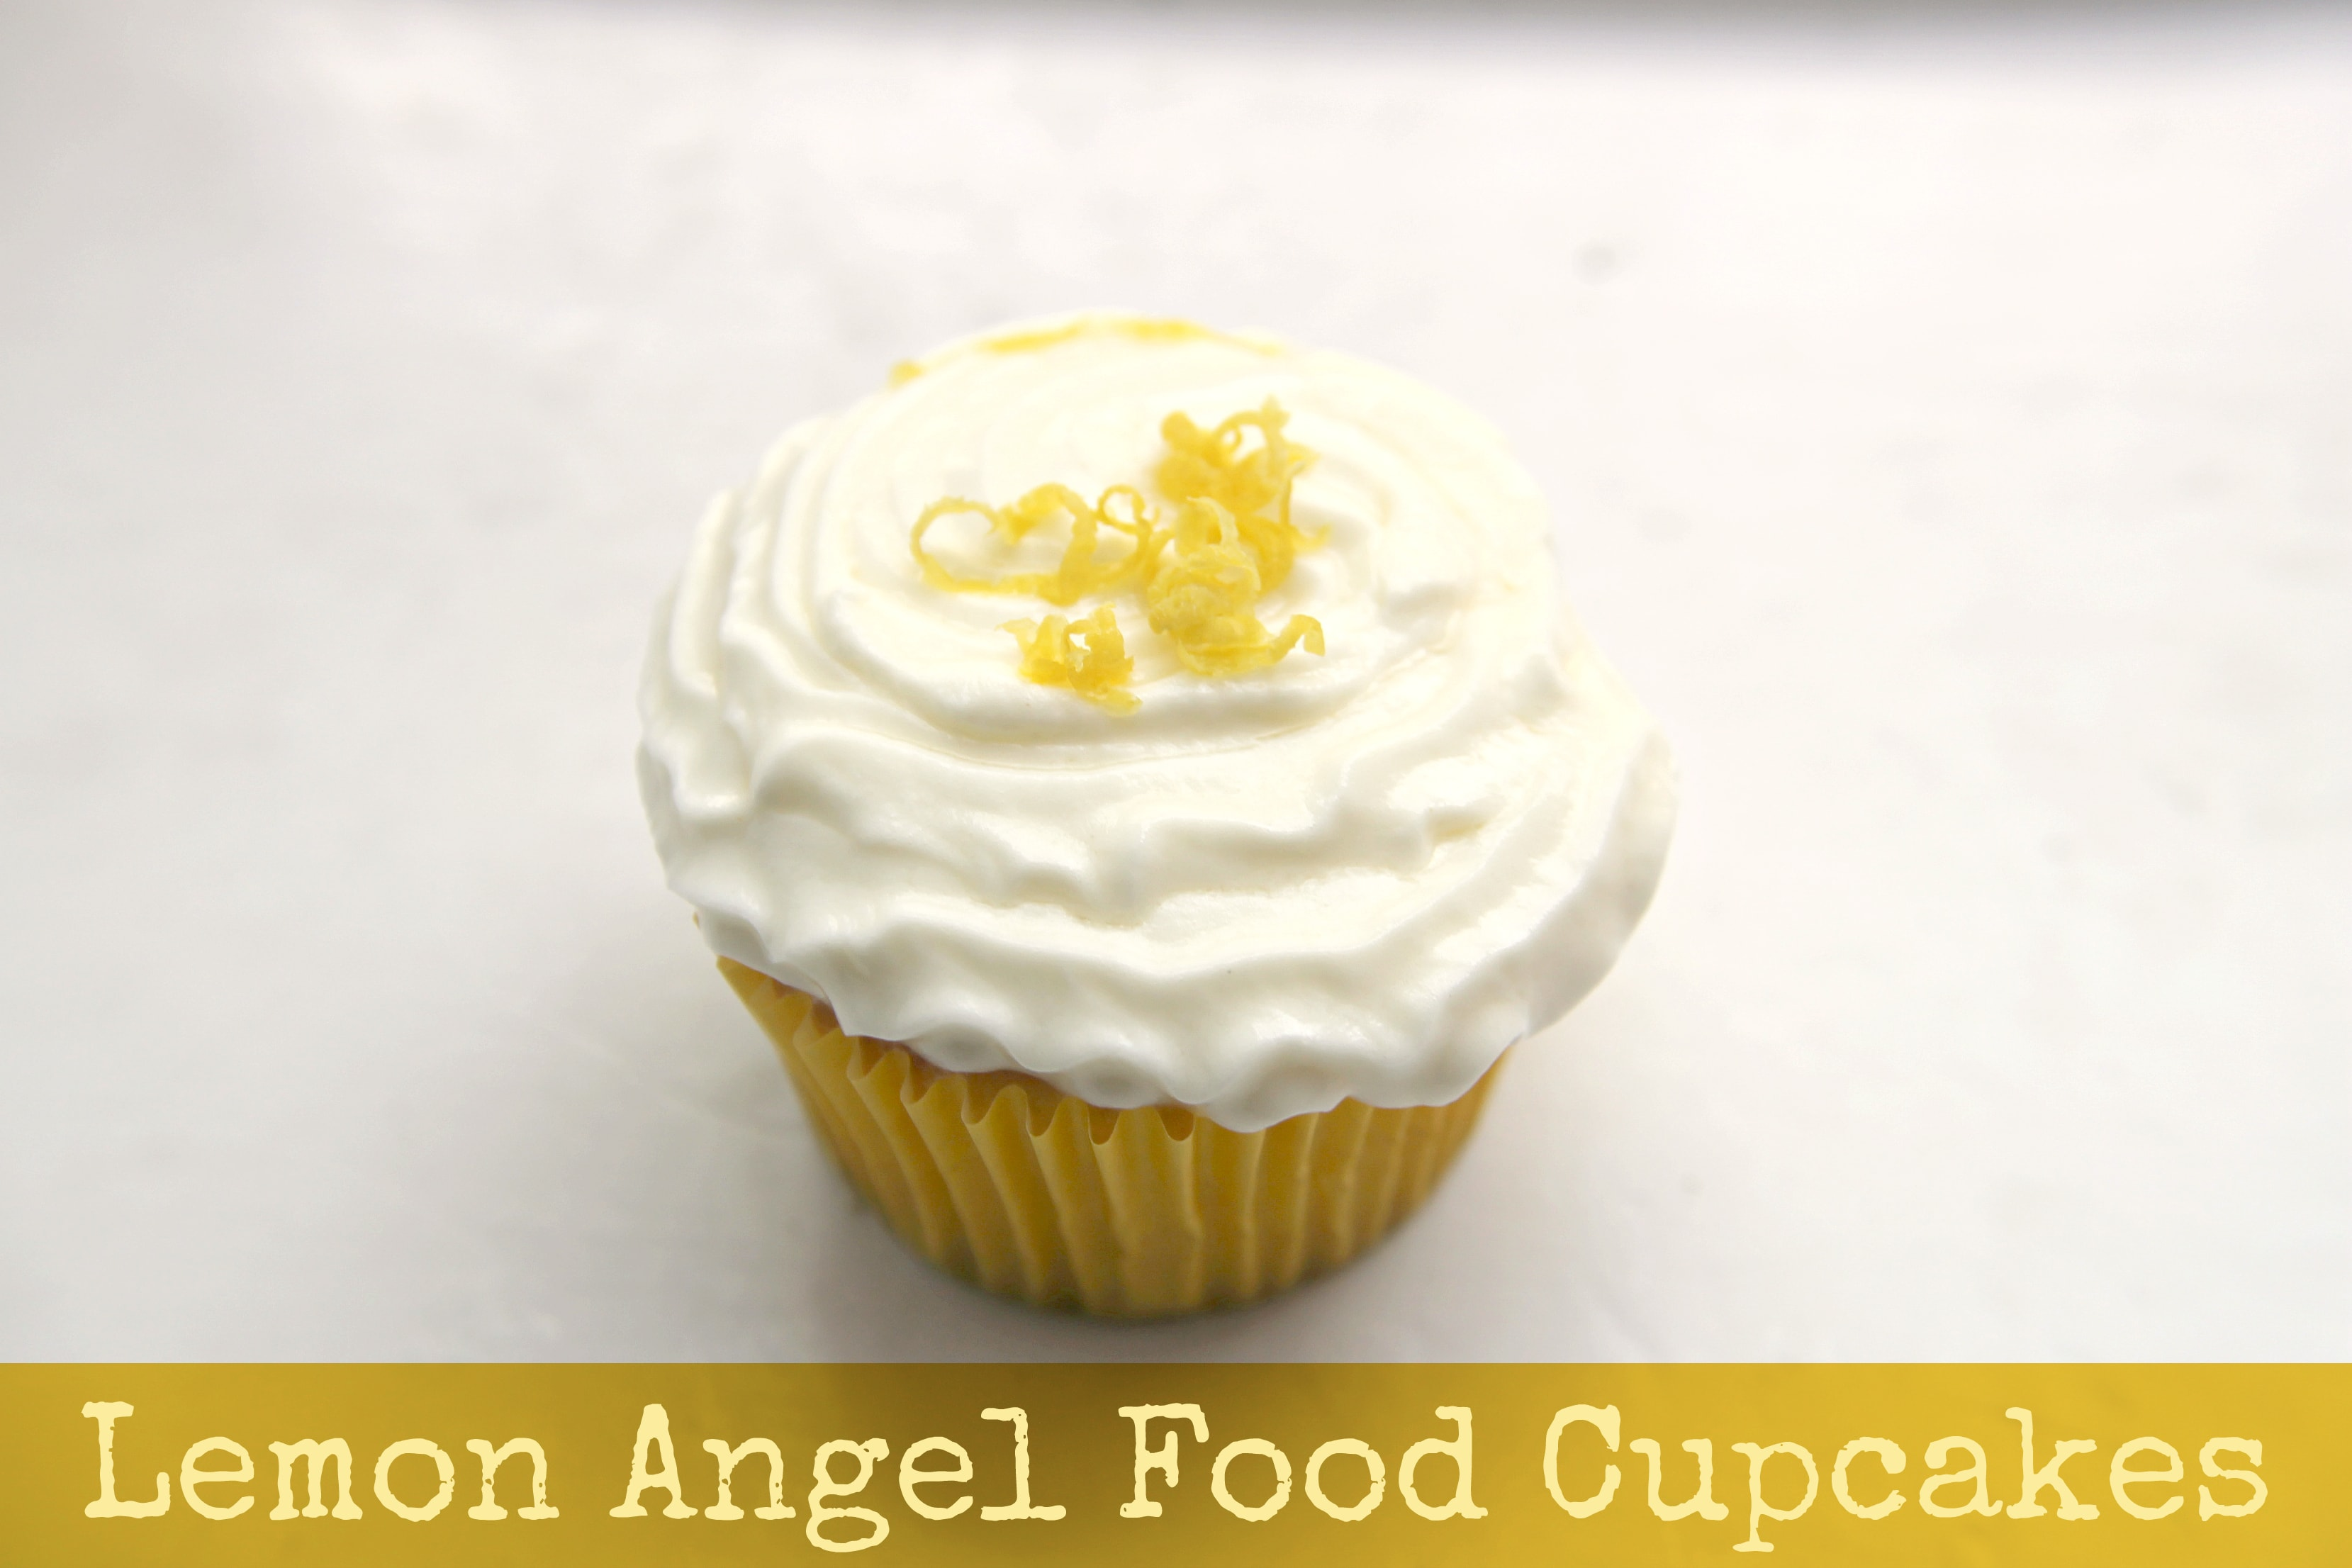 ... Stewart into a cupcake recipe to make these Lemon Angel Food Cupcakes